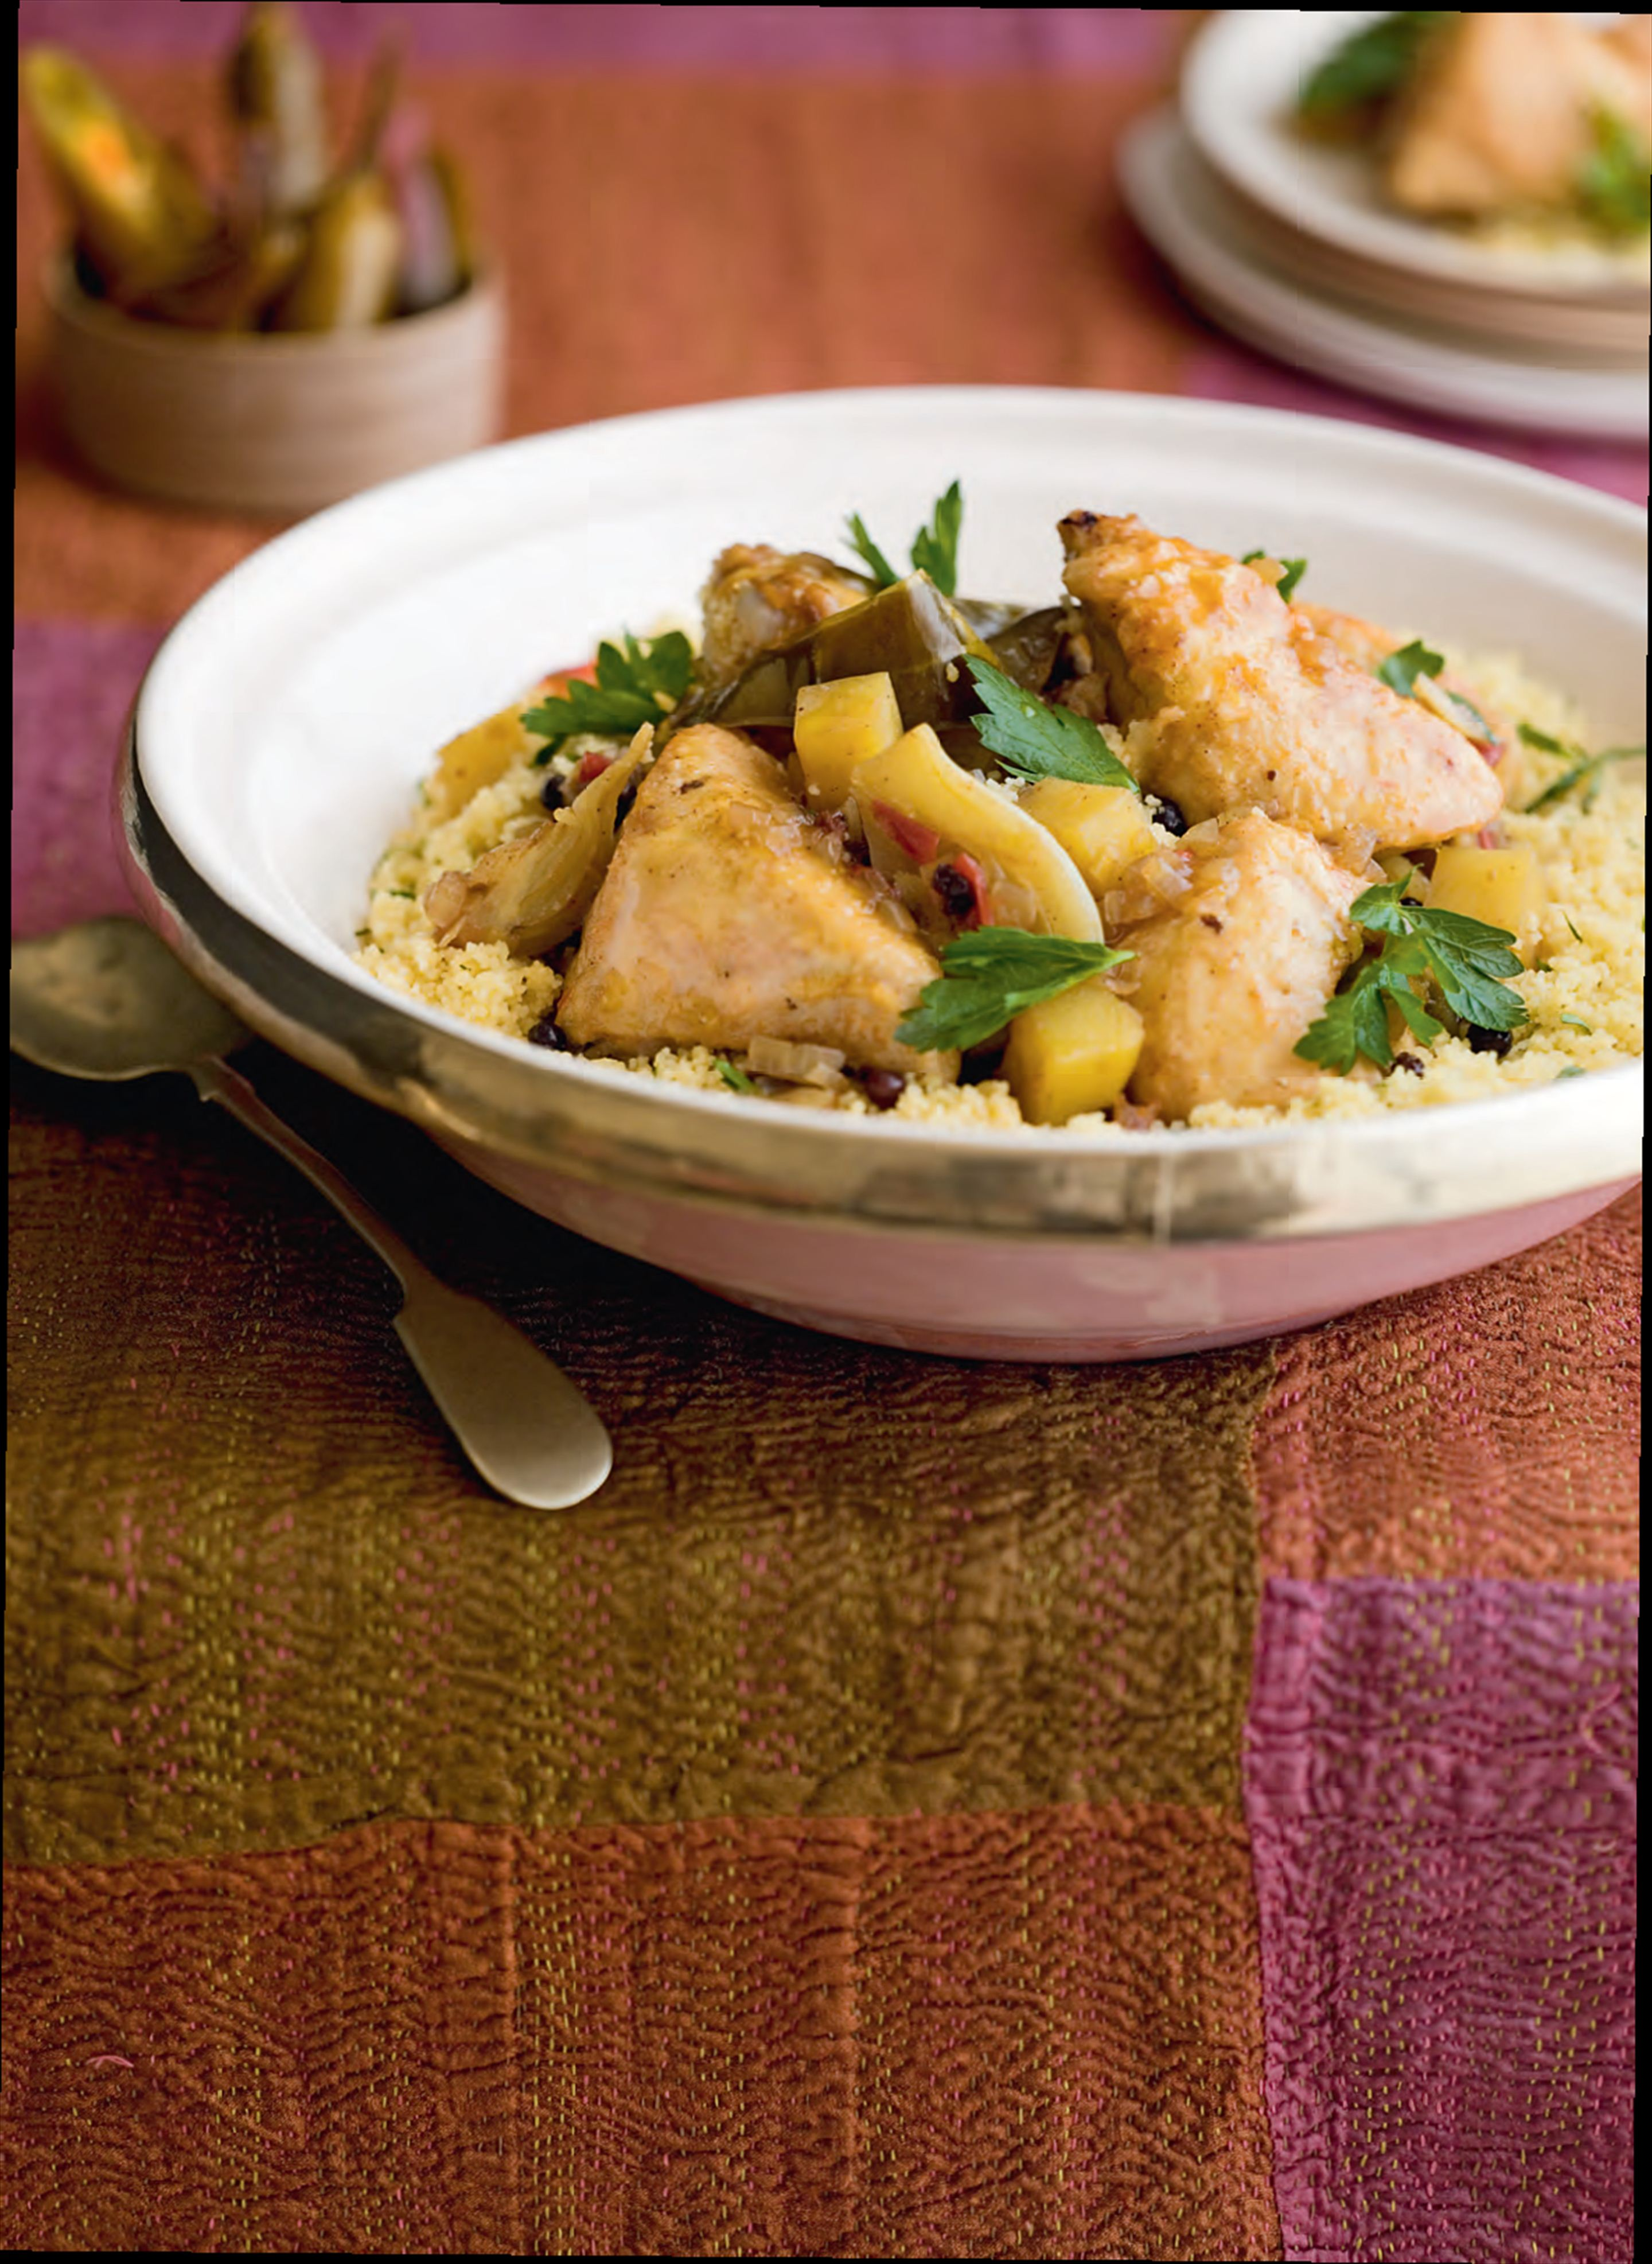 Chicken tagine with green herb couscous